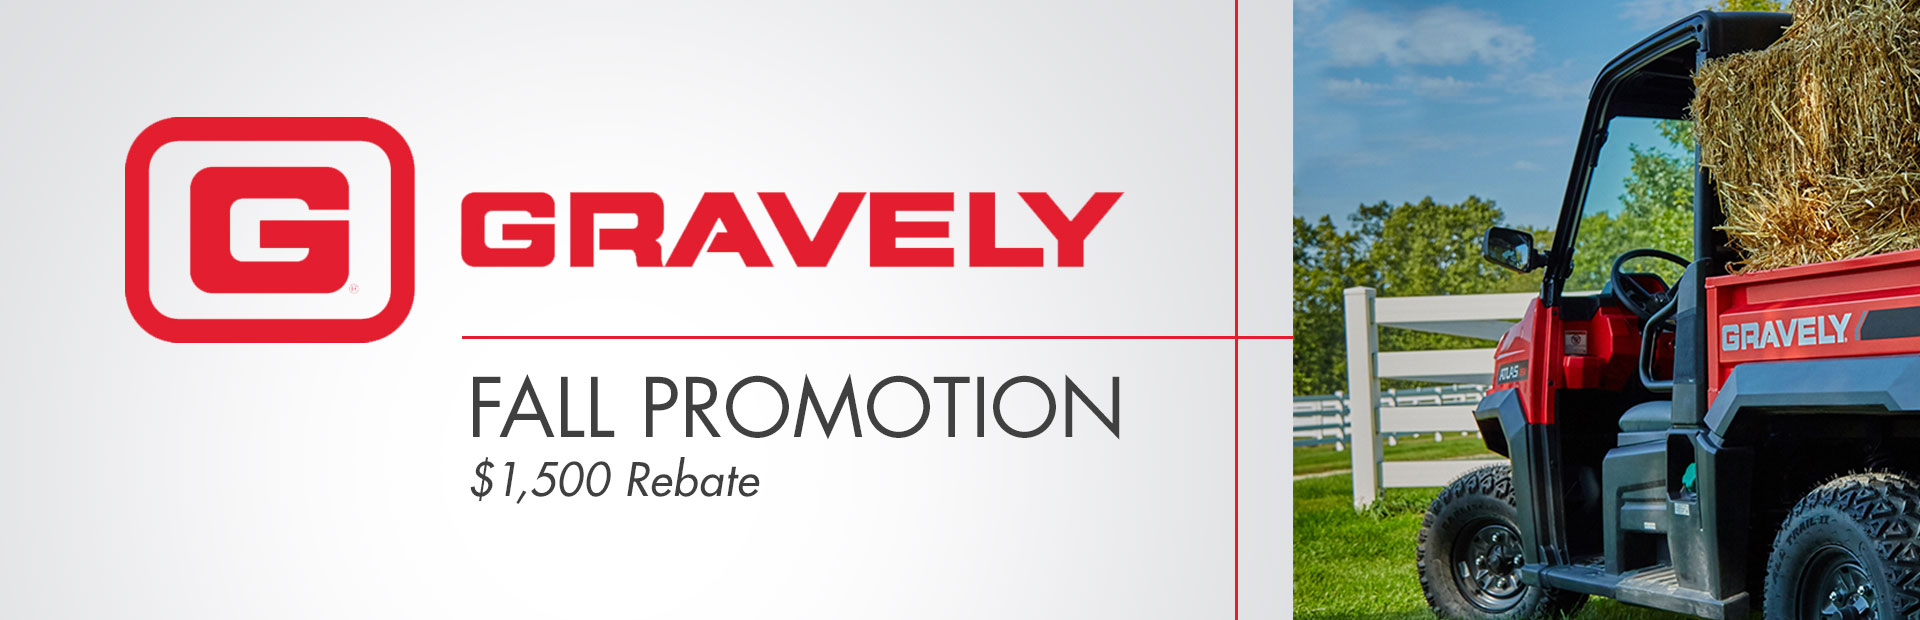 Gravely: Gravely Fall Promotion - $1500 Rebate